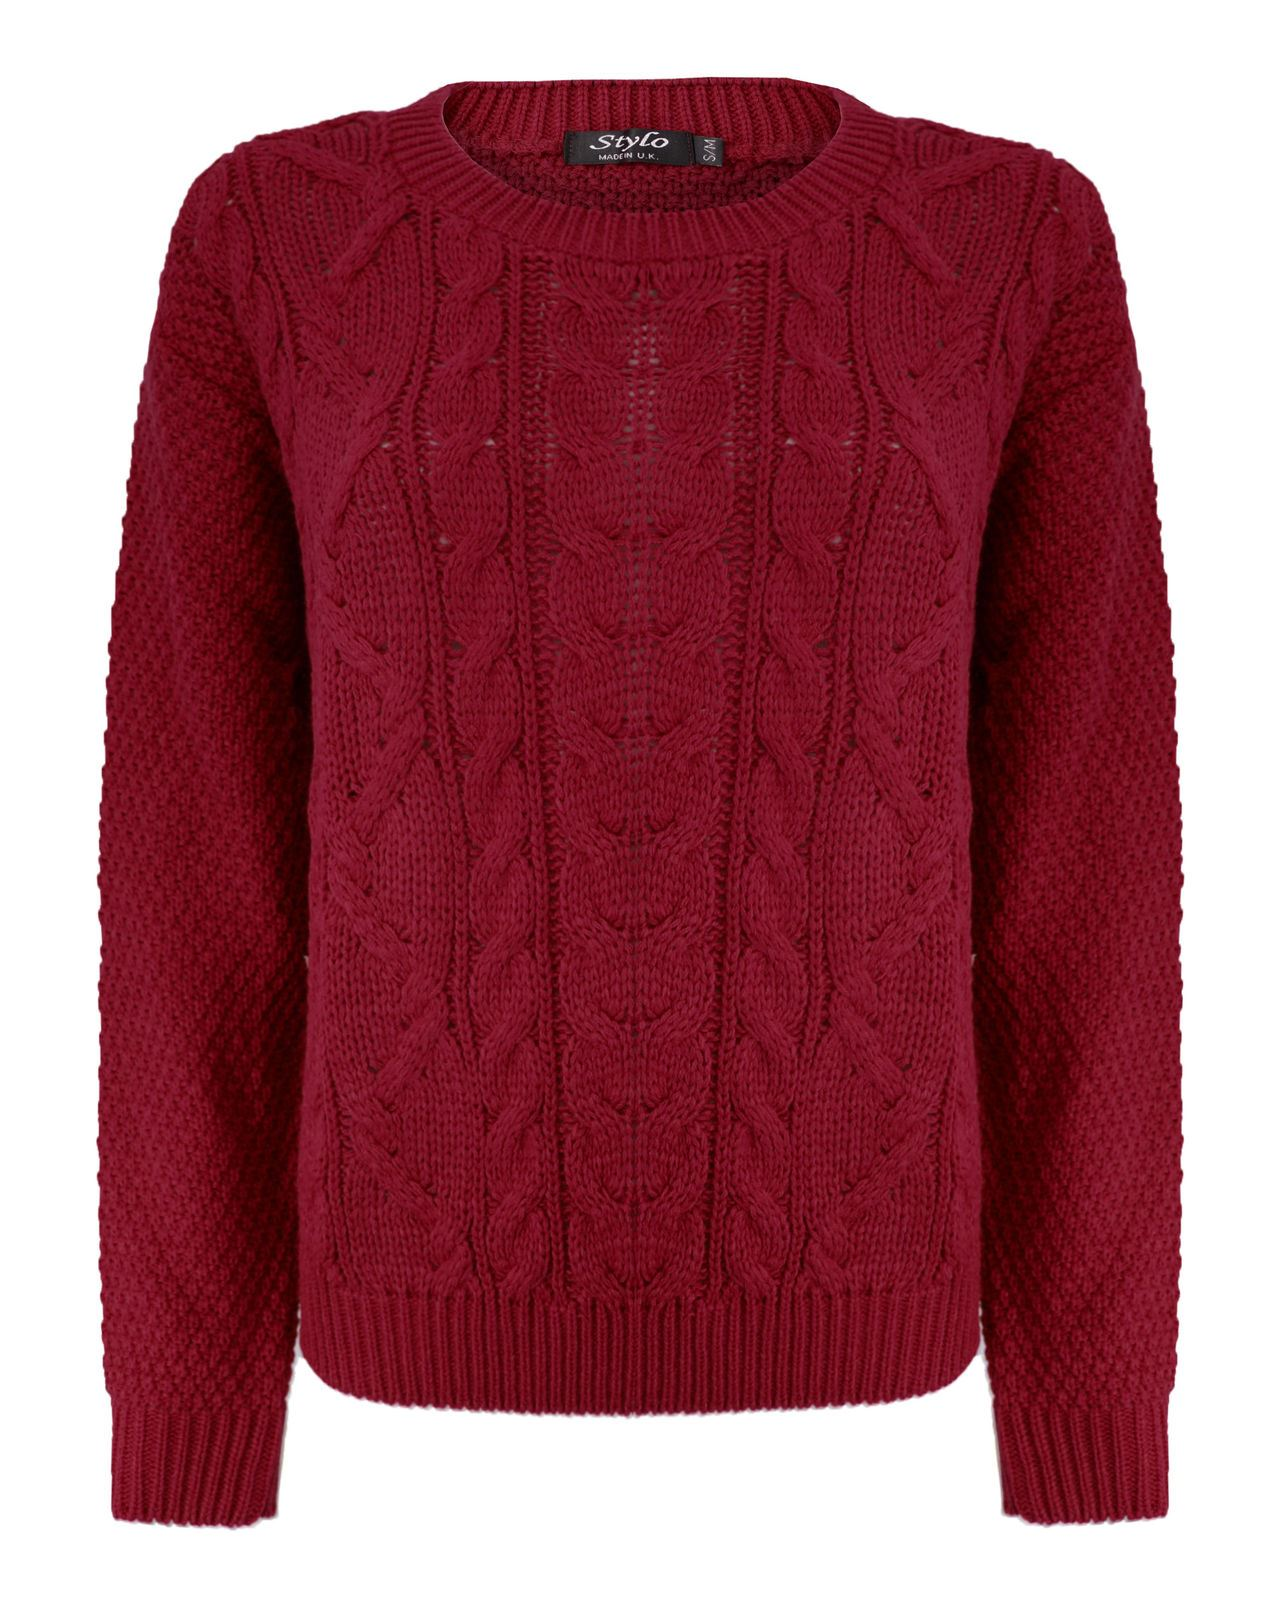 New Ladies Women Knitted Cable Knit Jumper Chunky Baggy Style ...